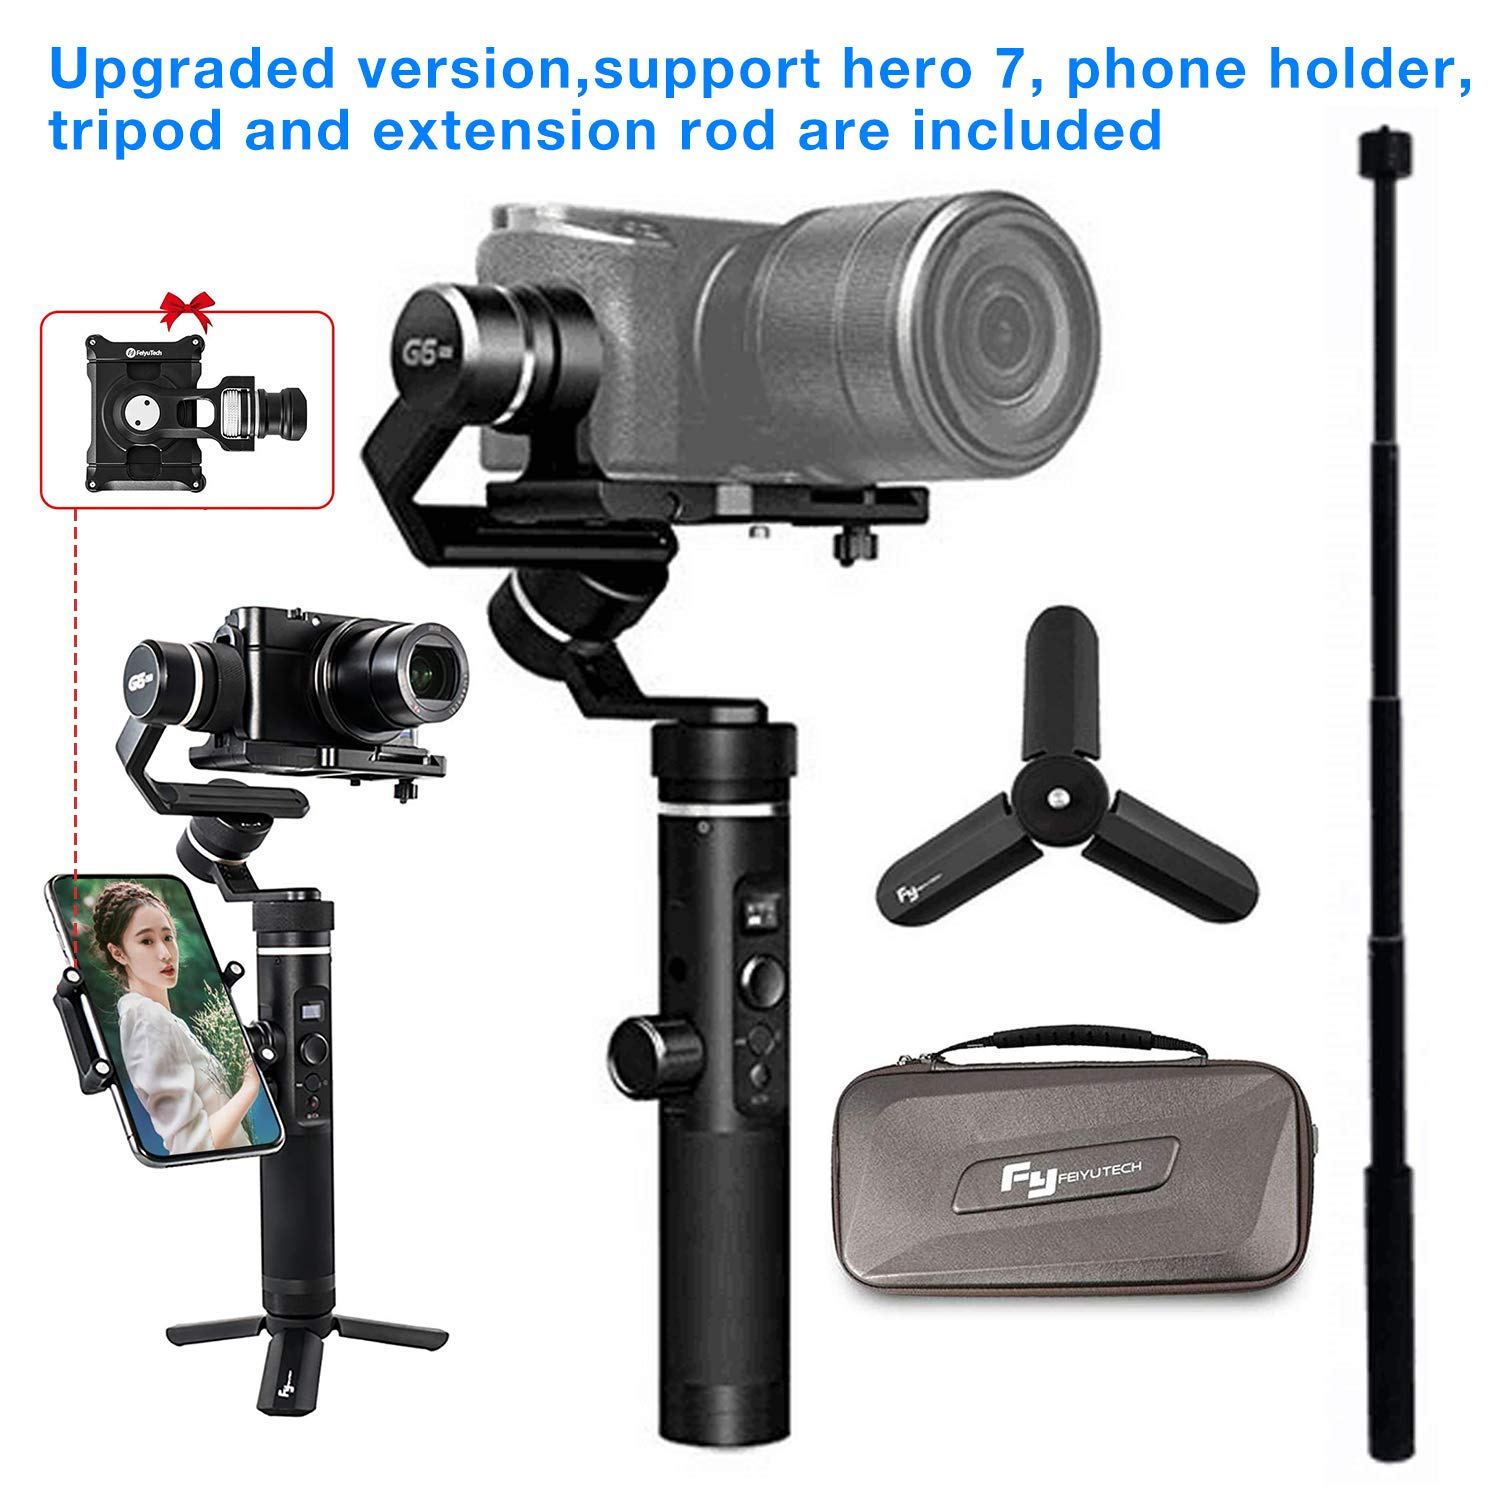 Extension Rod and Tripod 3 Axis Handheld Stabilizer Gimbal Compatible with Canon Mirrorless Cameras Feiyu G6plus w//Phone Holder iPhone//Smartphone MAX Load 800 GoPro Hero 7 6 5 4 Action Cameras